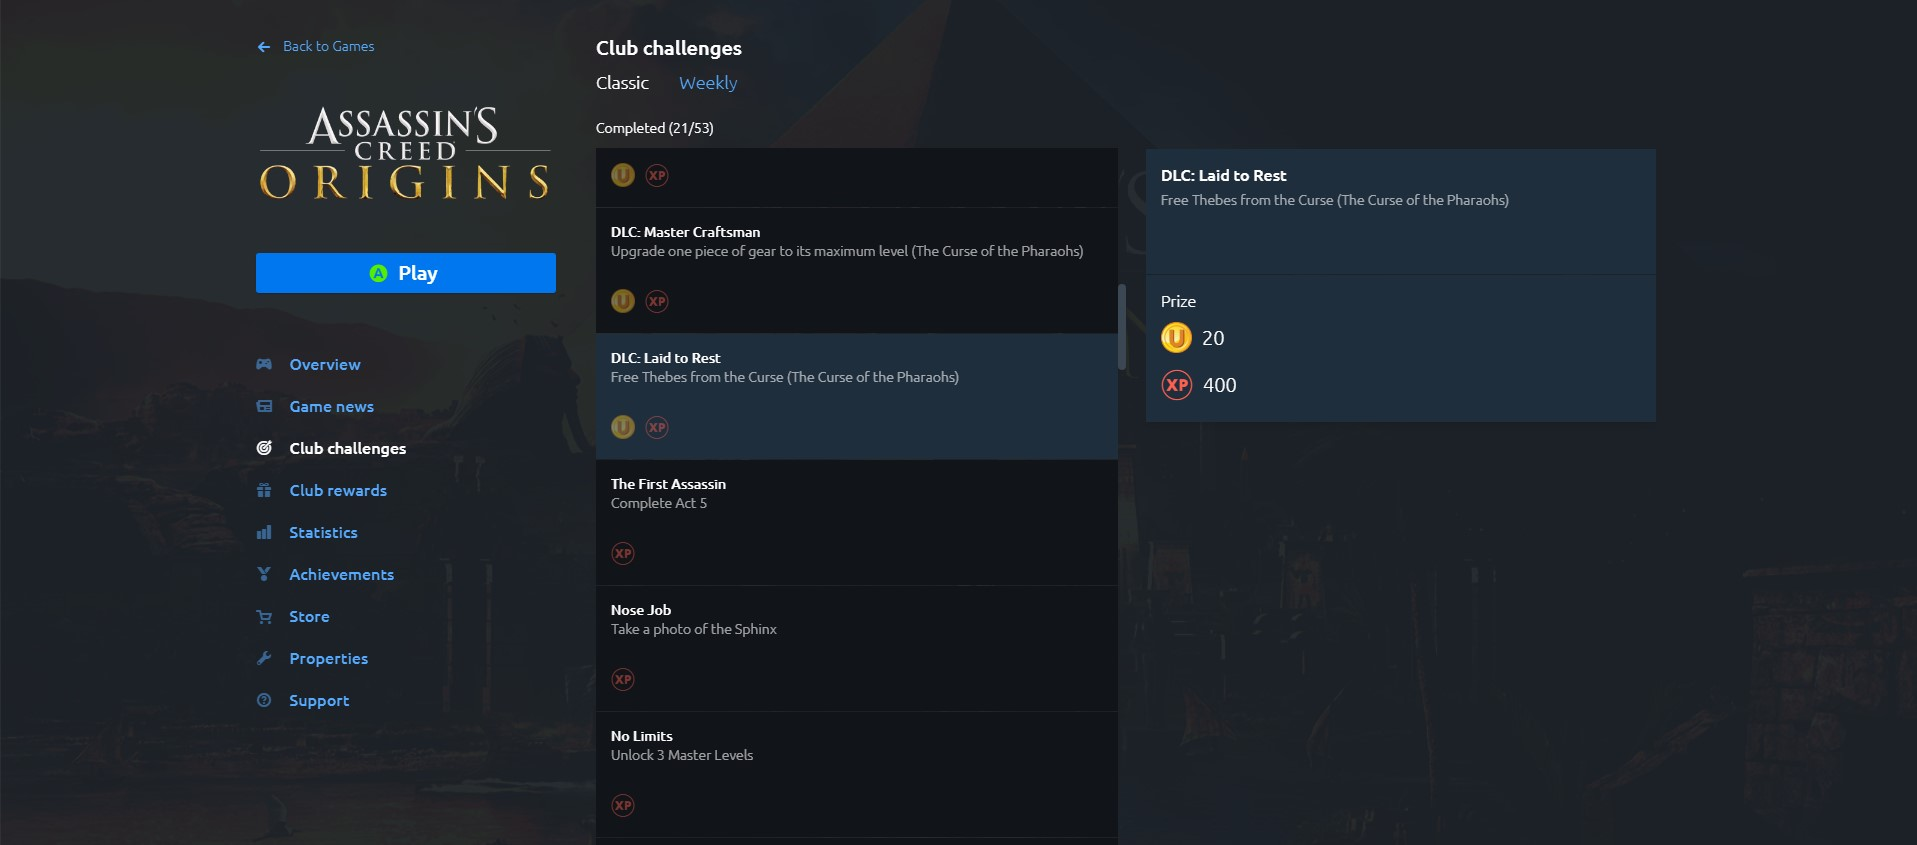 UPLAY Challenges